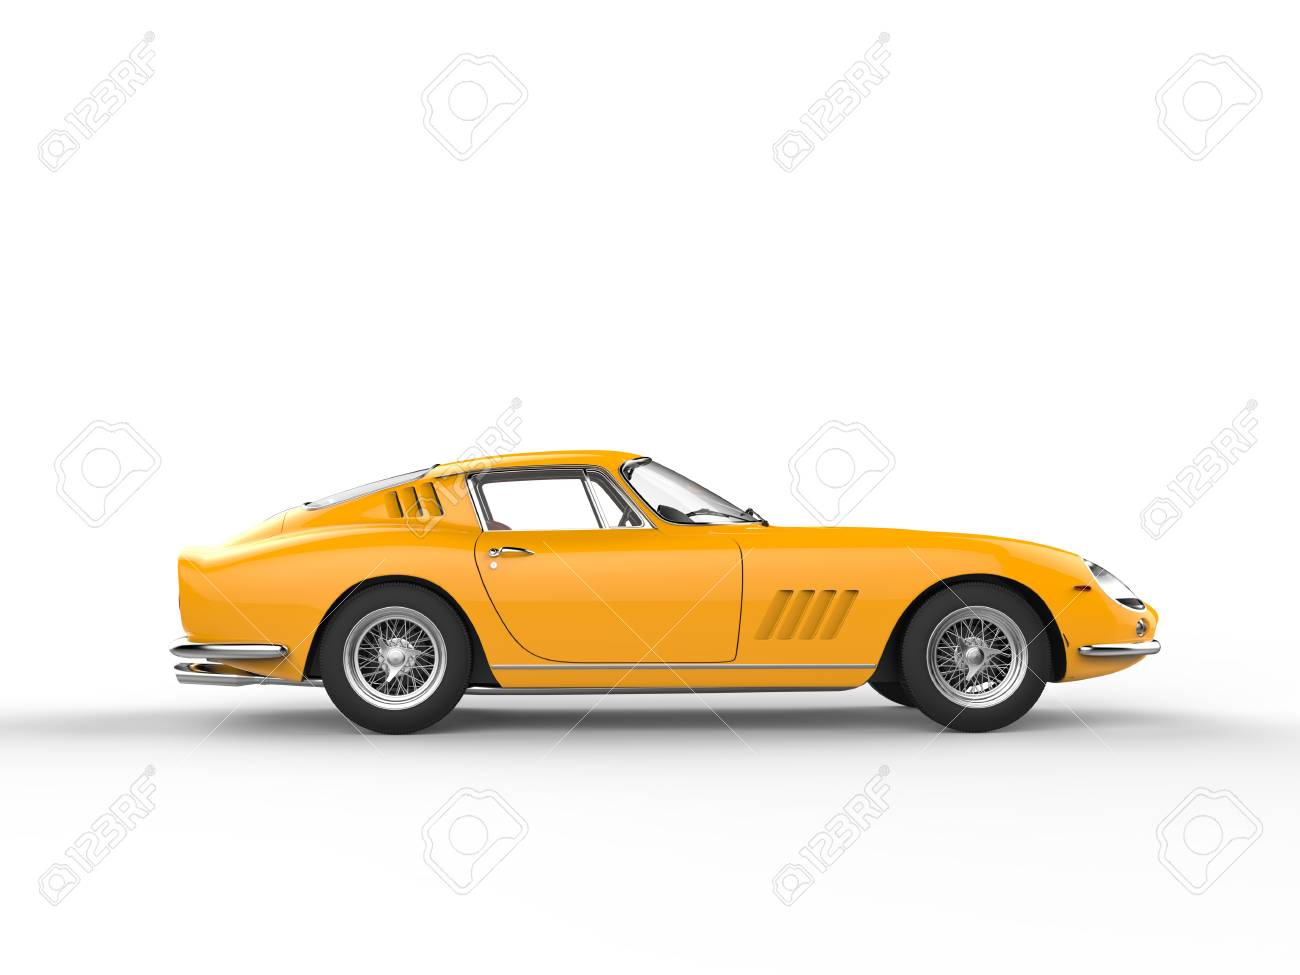 Awesome Yellow Vintage Sports Car Isolated On White Background Stock Photo Picture And Royalty Free Image Image 56828633